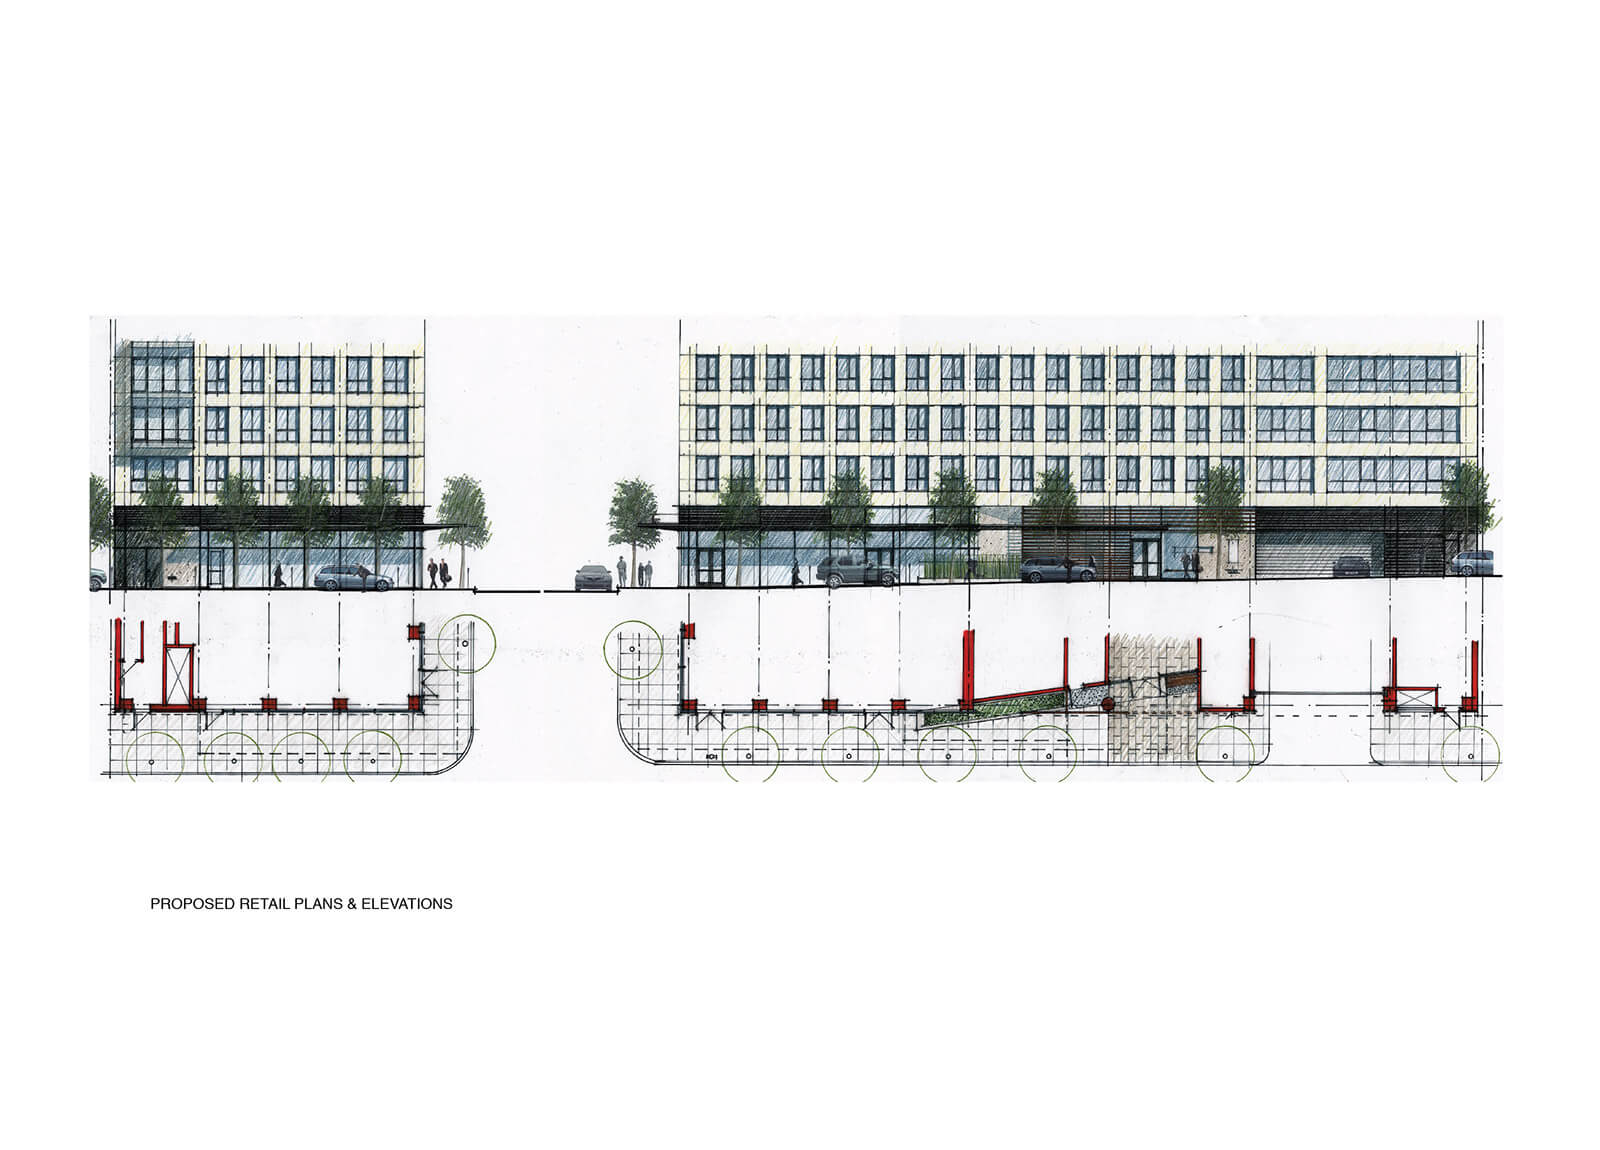 studio vara multifamily one hawthorne drawing plan elevation